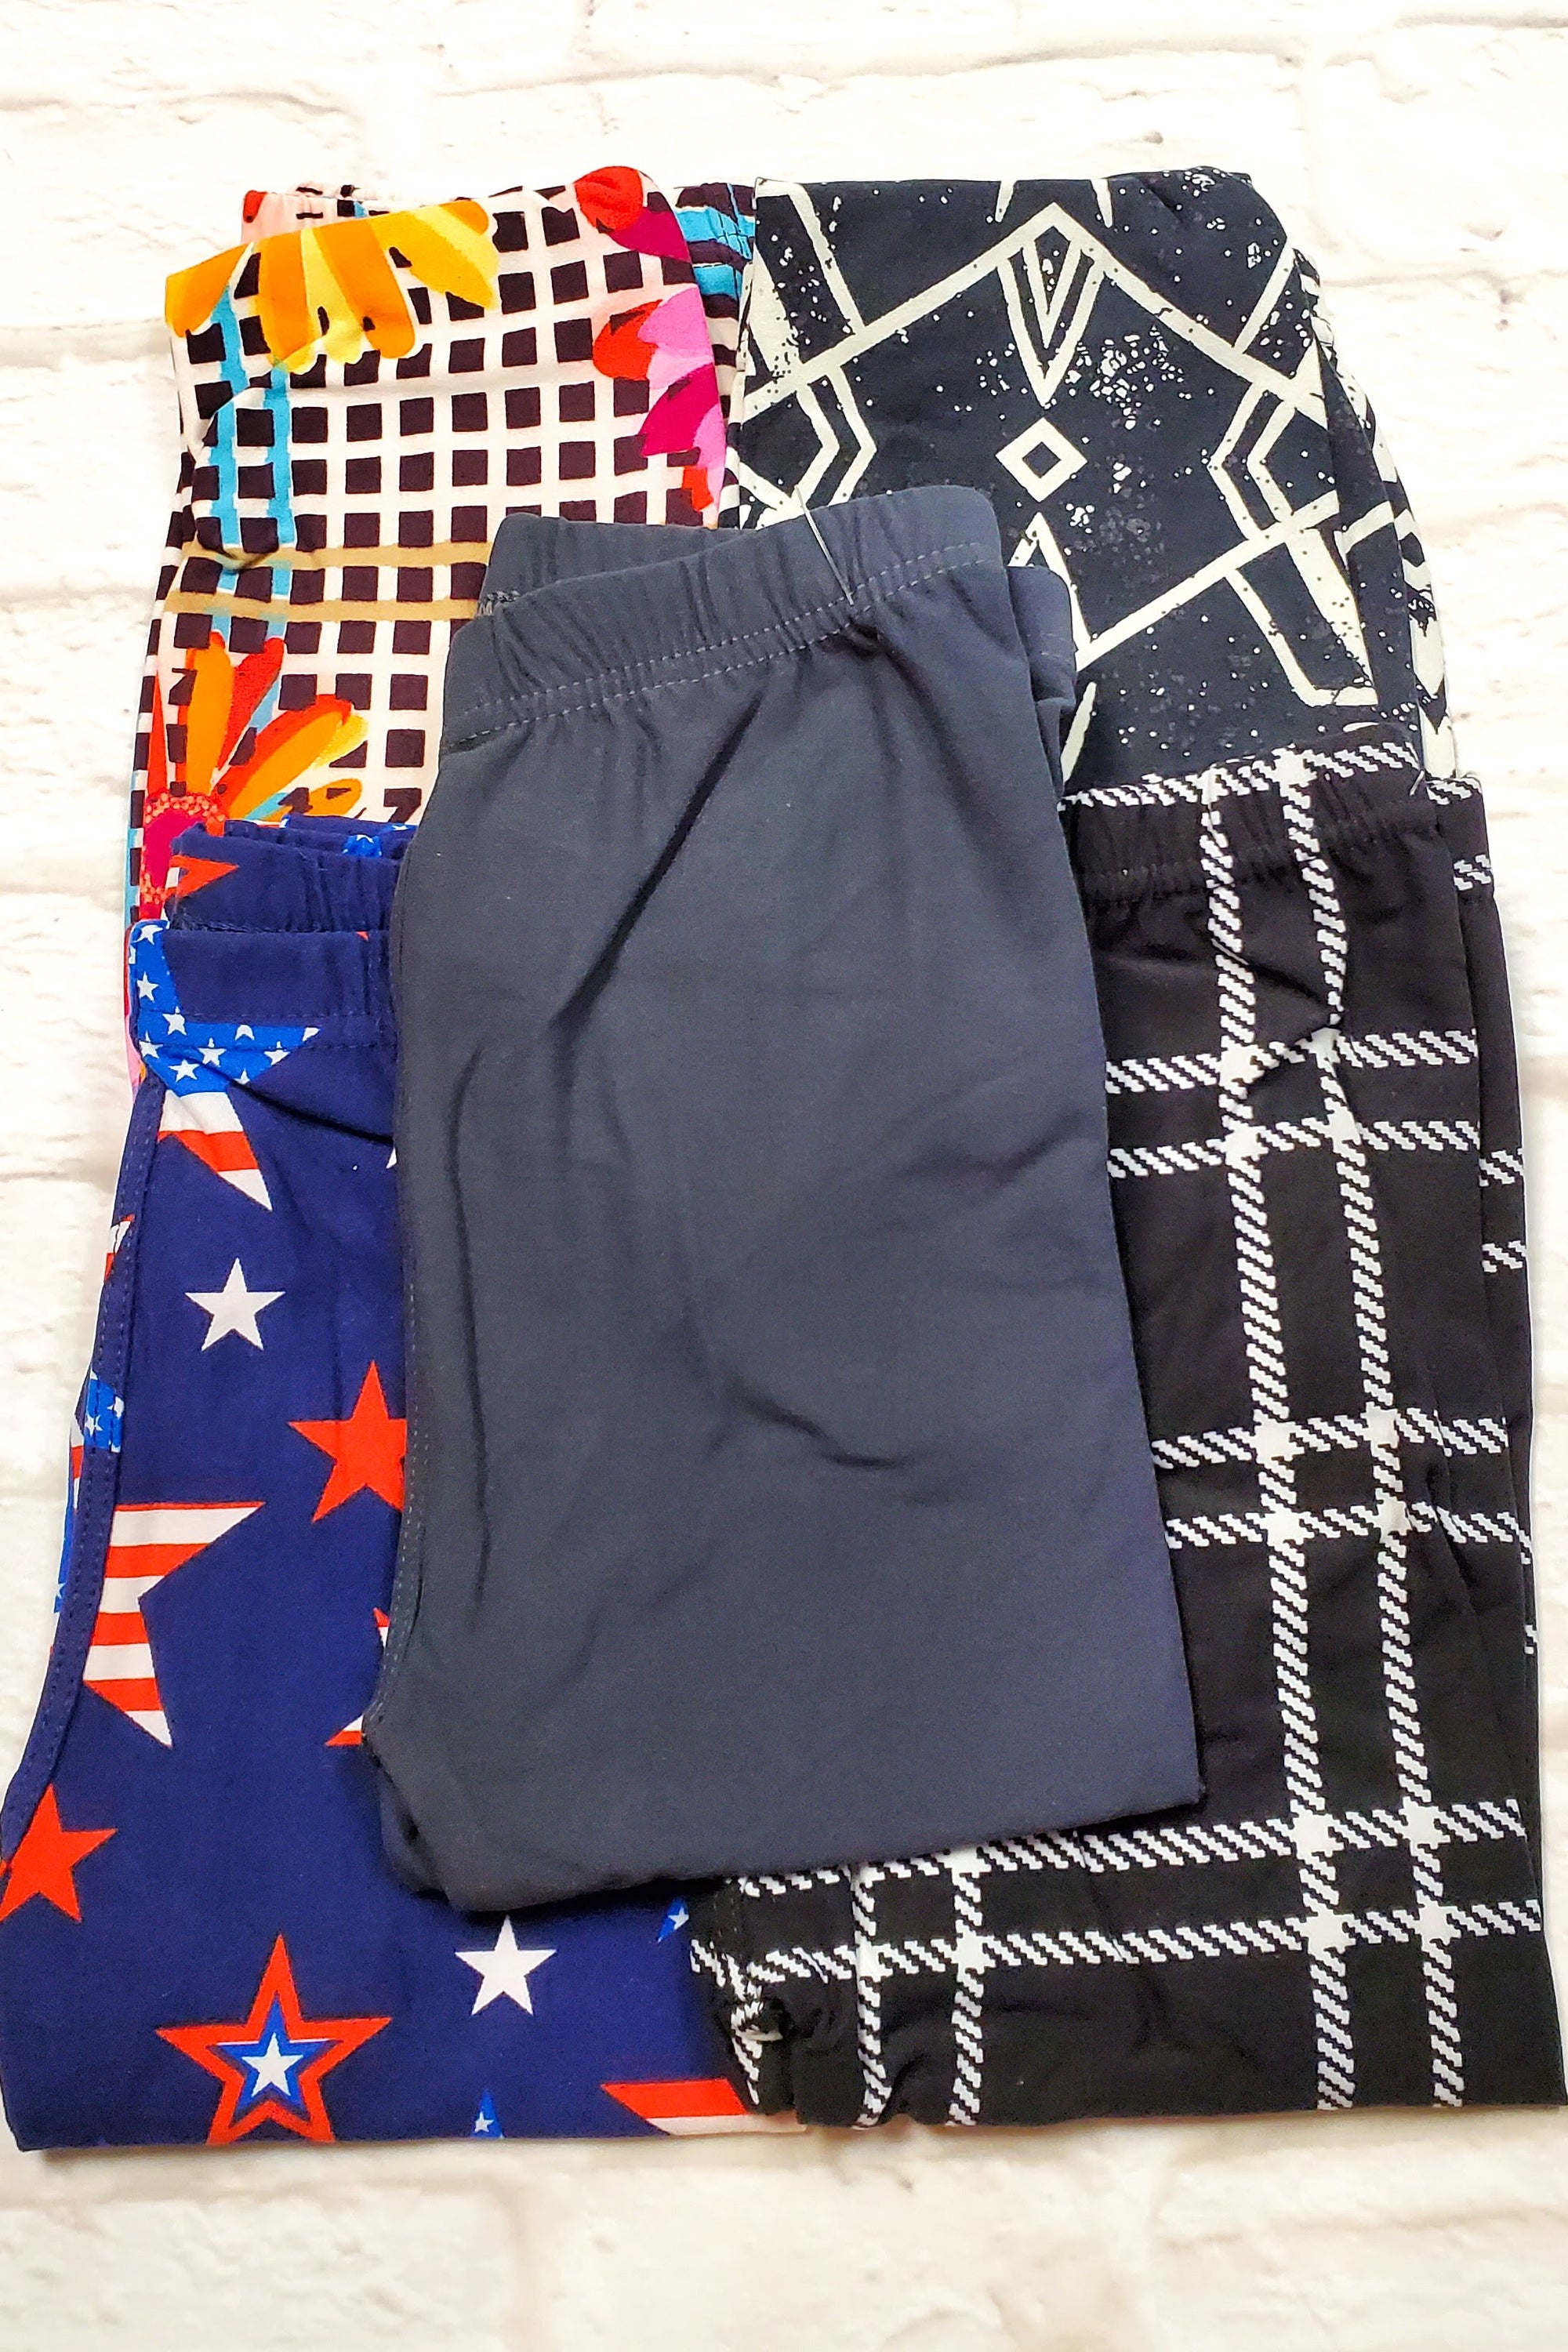 KIDS LEGGINGS CLEARANCE 5pk BUNDLE P Small (as pictured)